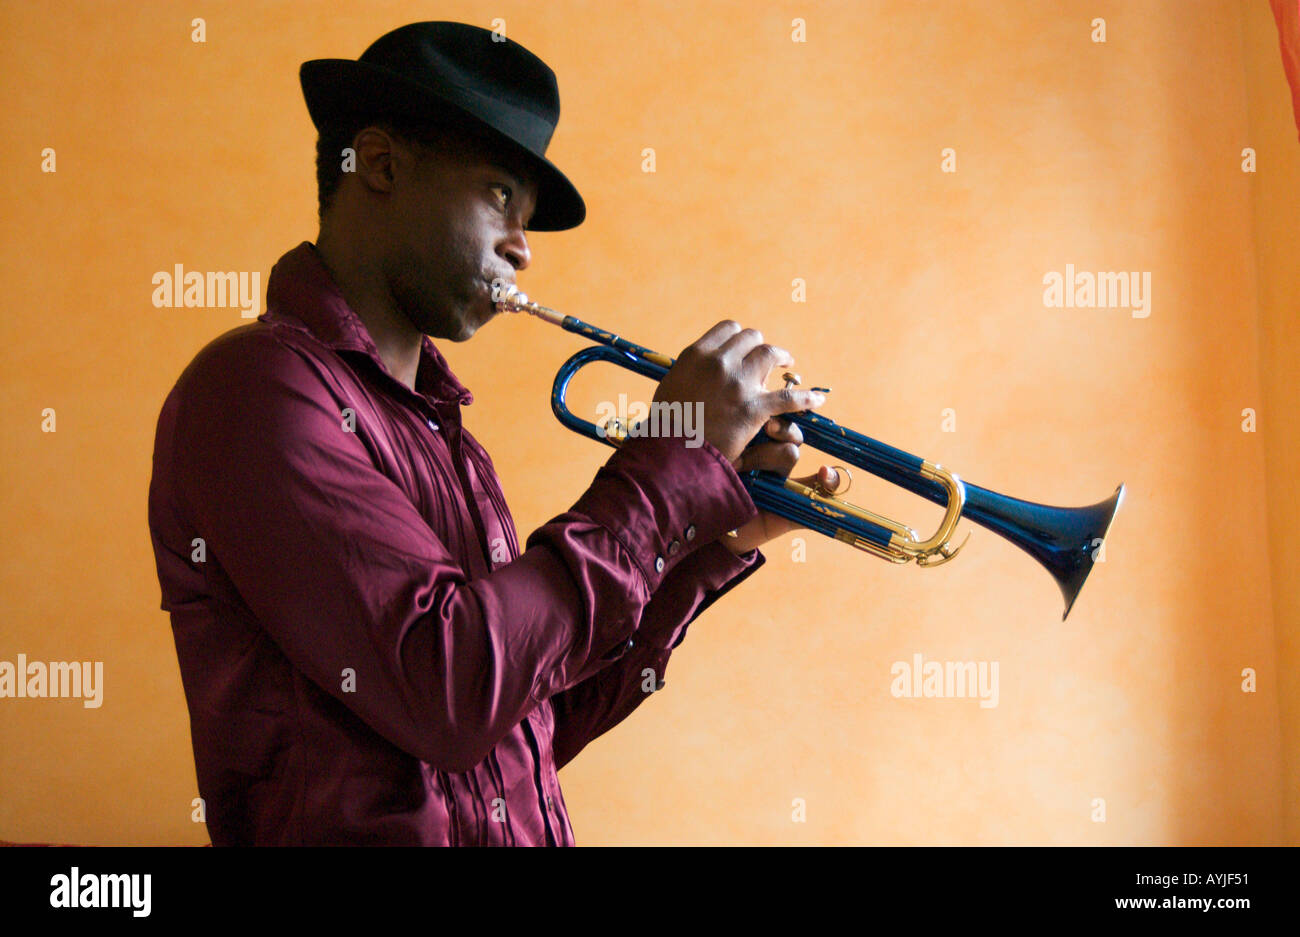 african american man wearing a fedora hat plays a blue Trumpet in front of a yellow wall inside - Stock Image